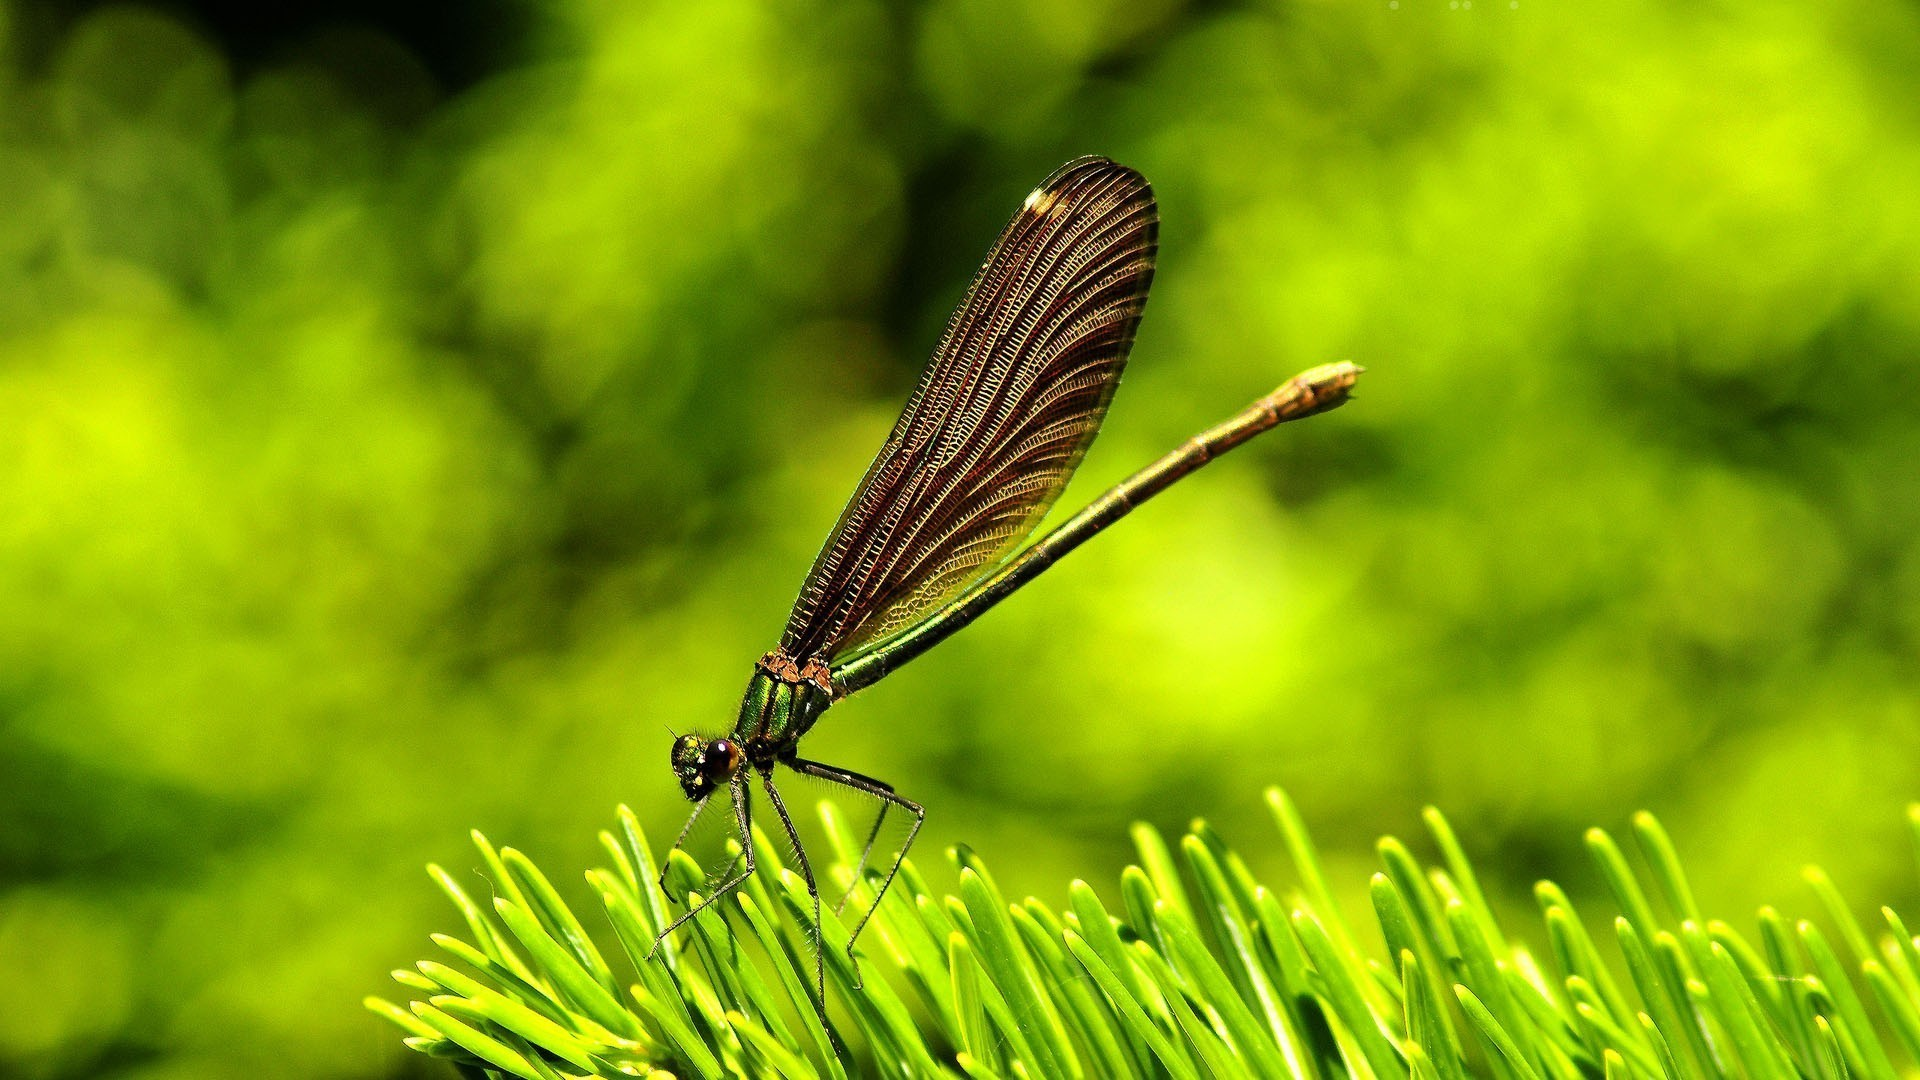 Res: 1920x1080, Dragonflies green insects nature wallpaper